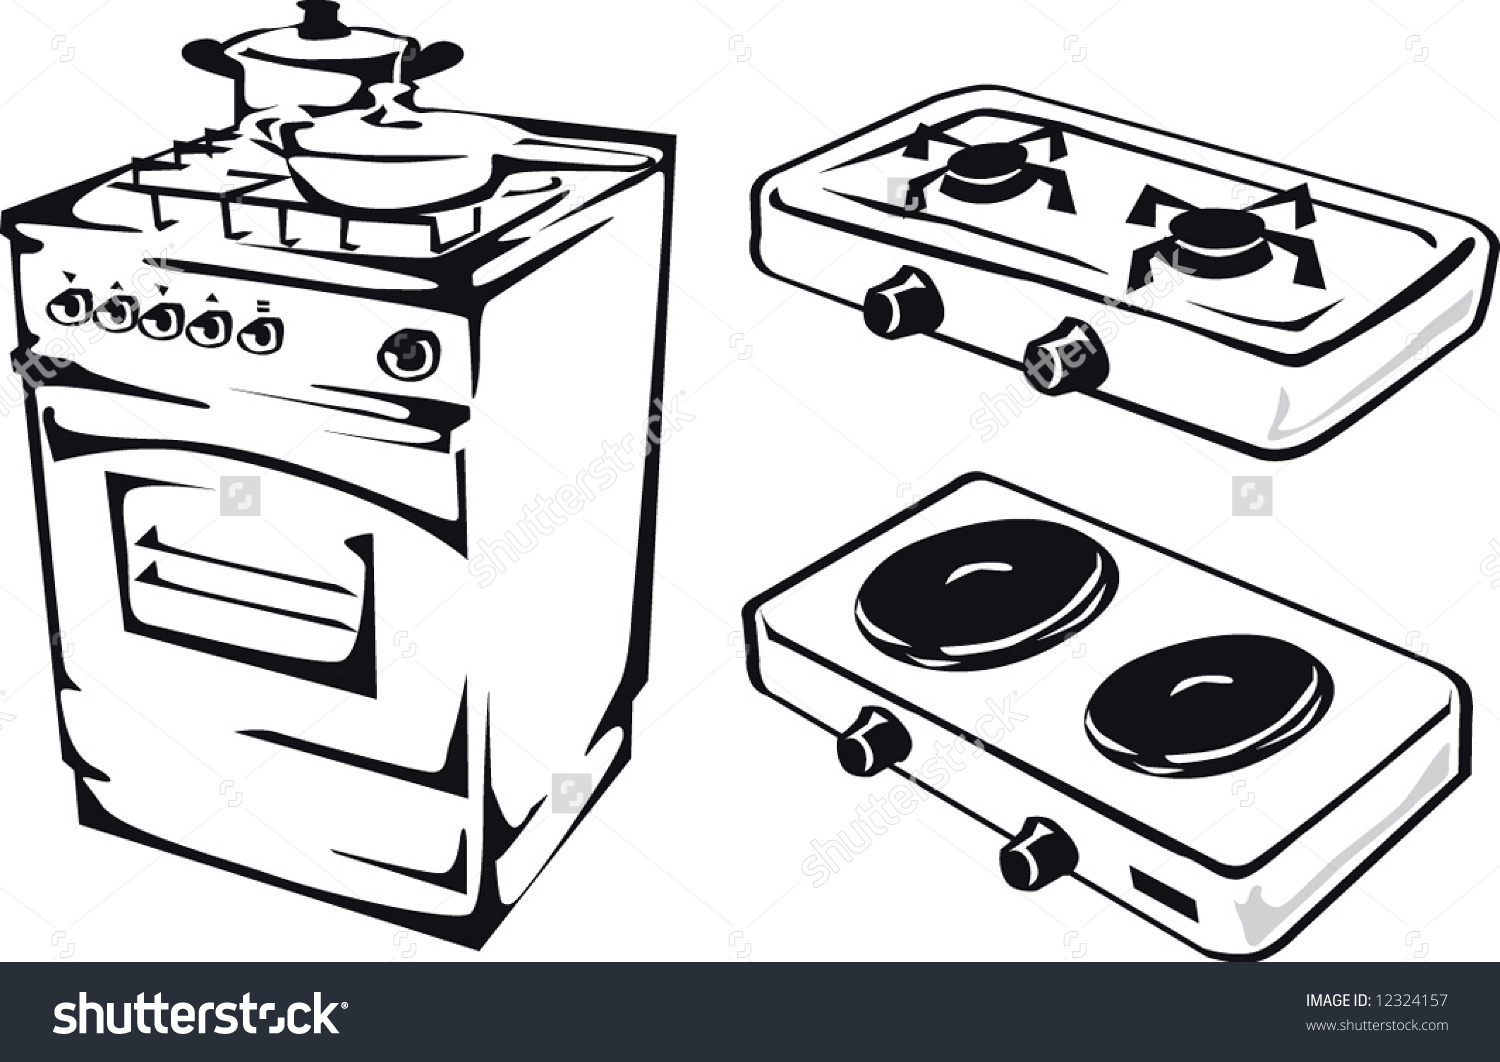 Gas stove clipart clip art royalty free Gas stove clipart 5 » Clipart Station clip art royalty free